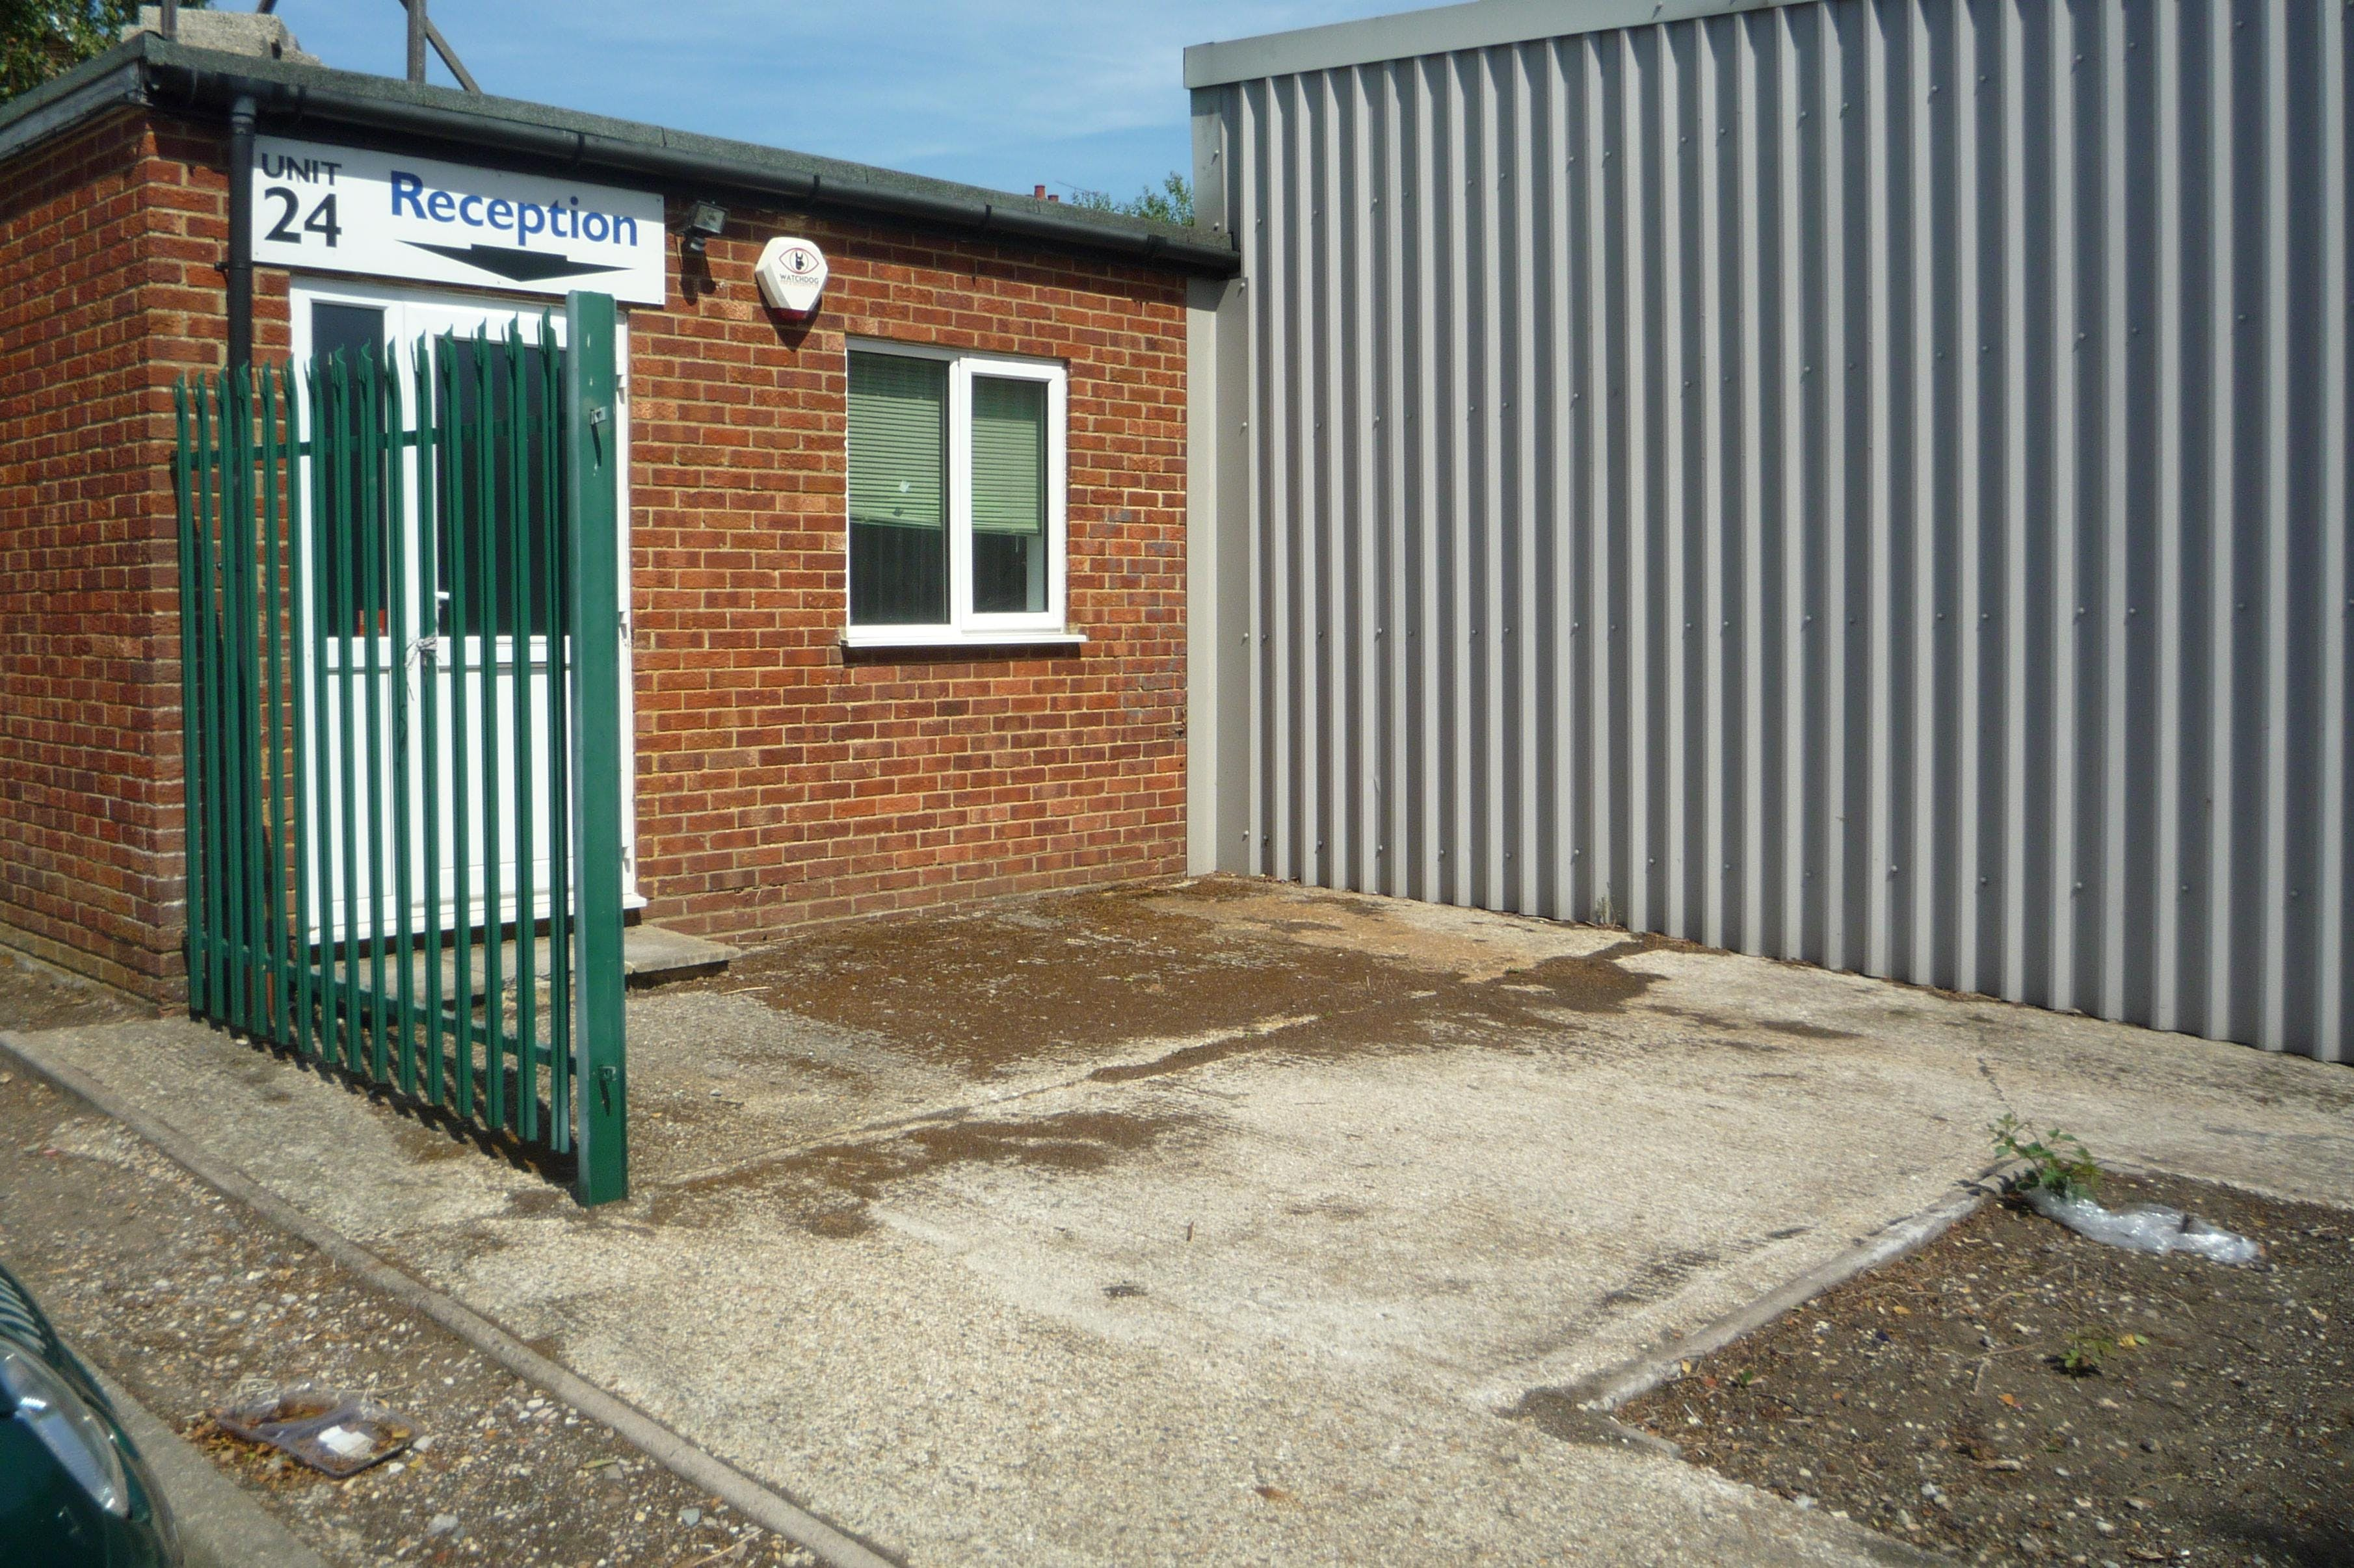 Unit 24 Wilton Road, St Georges Industrial Estate, Camberley For Sale - P1030798.JPG